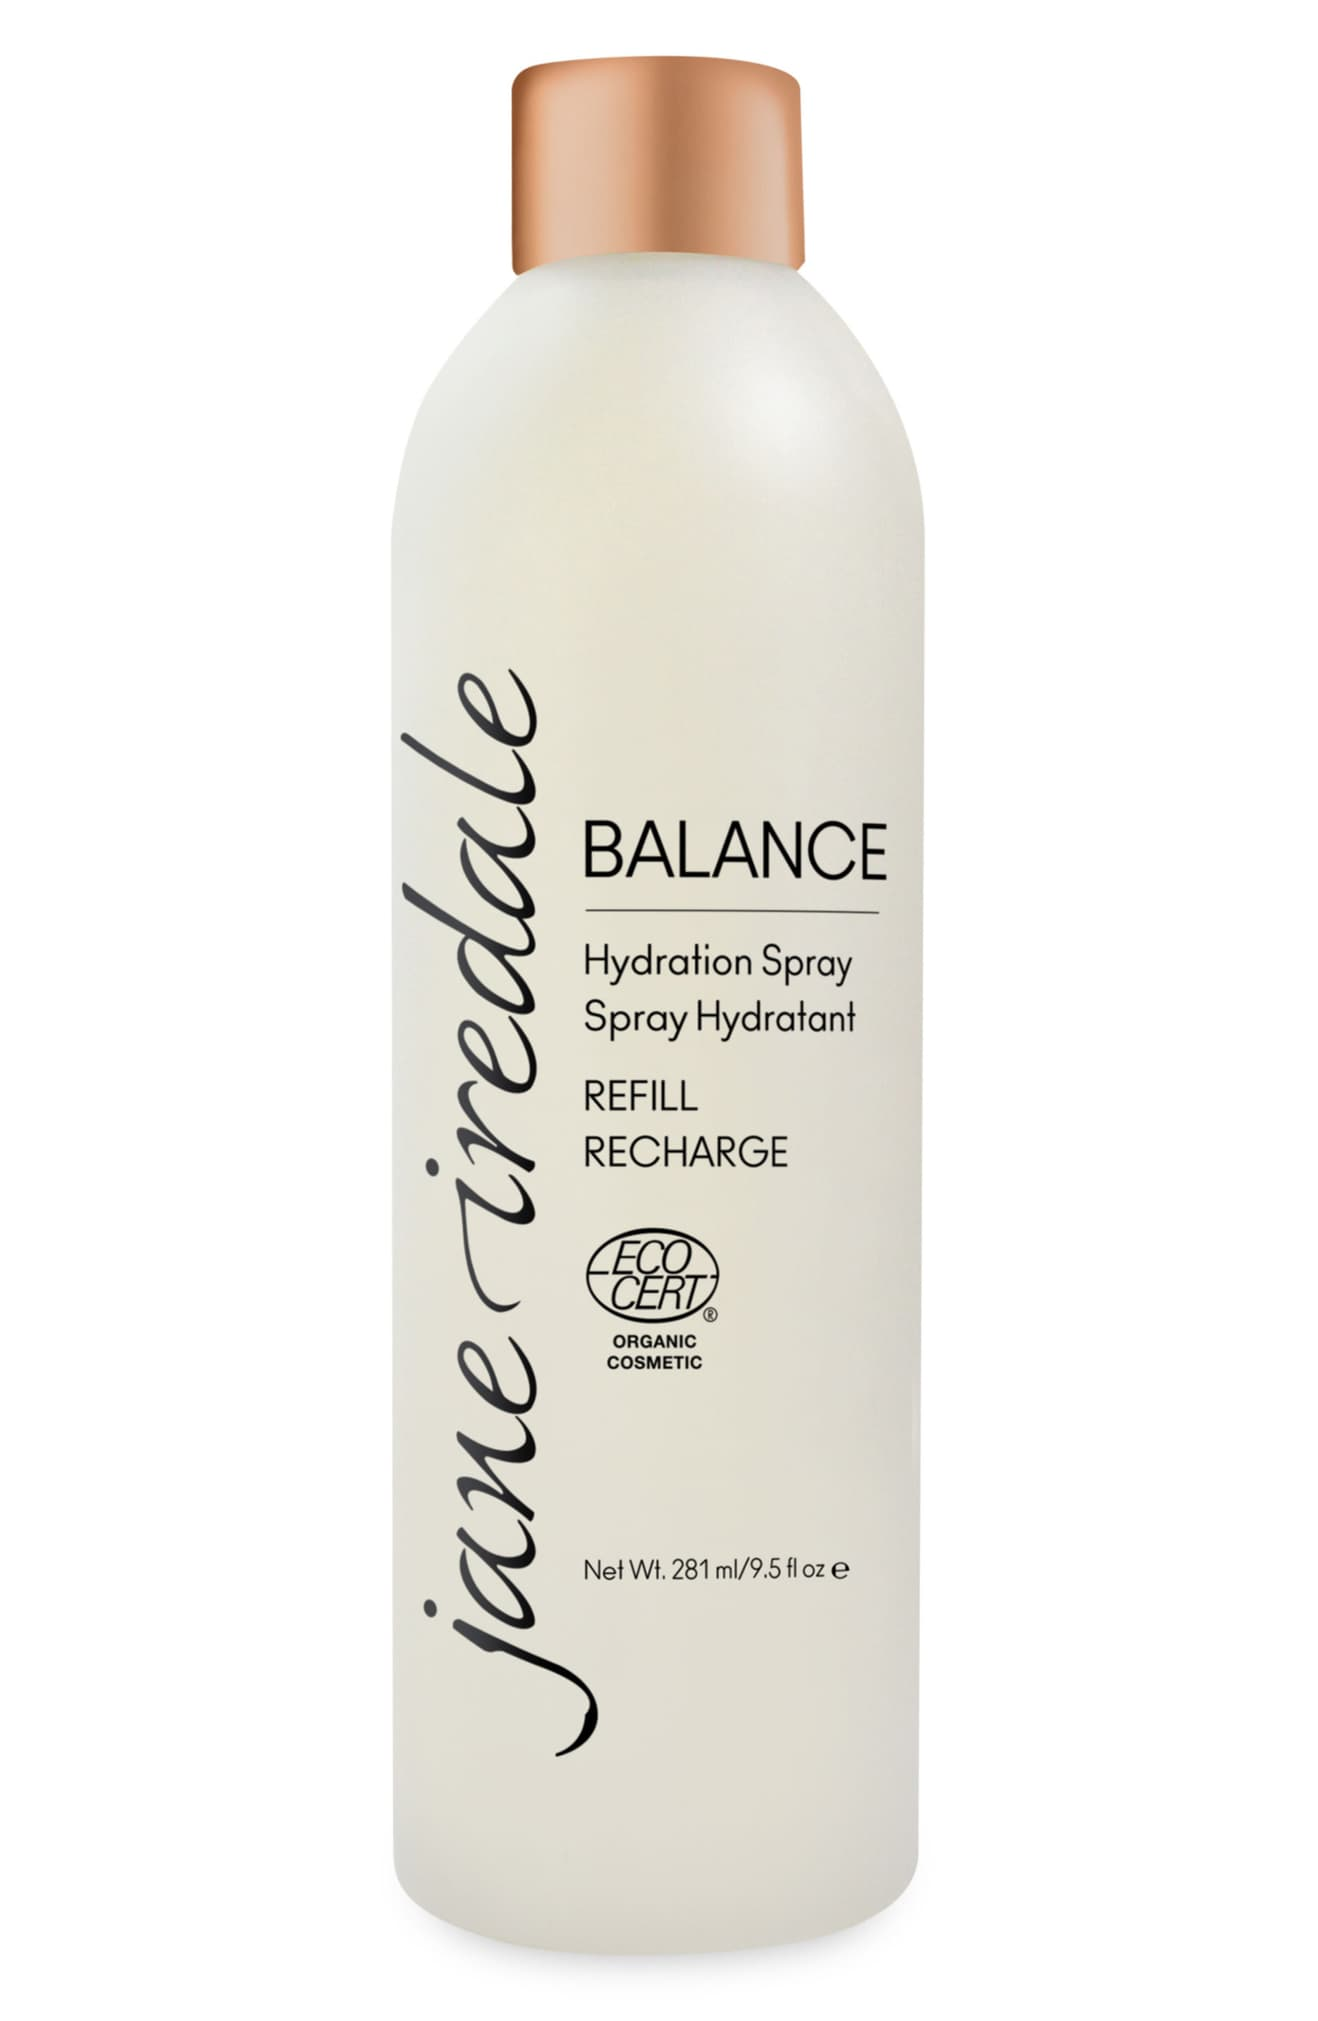 JANE IREDALE Balance Hydration Spray Refill